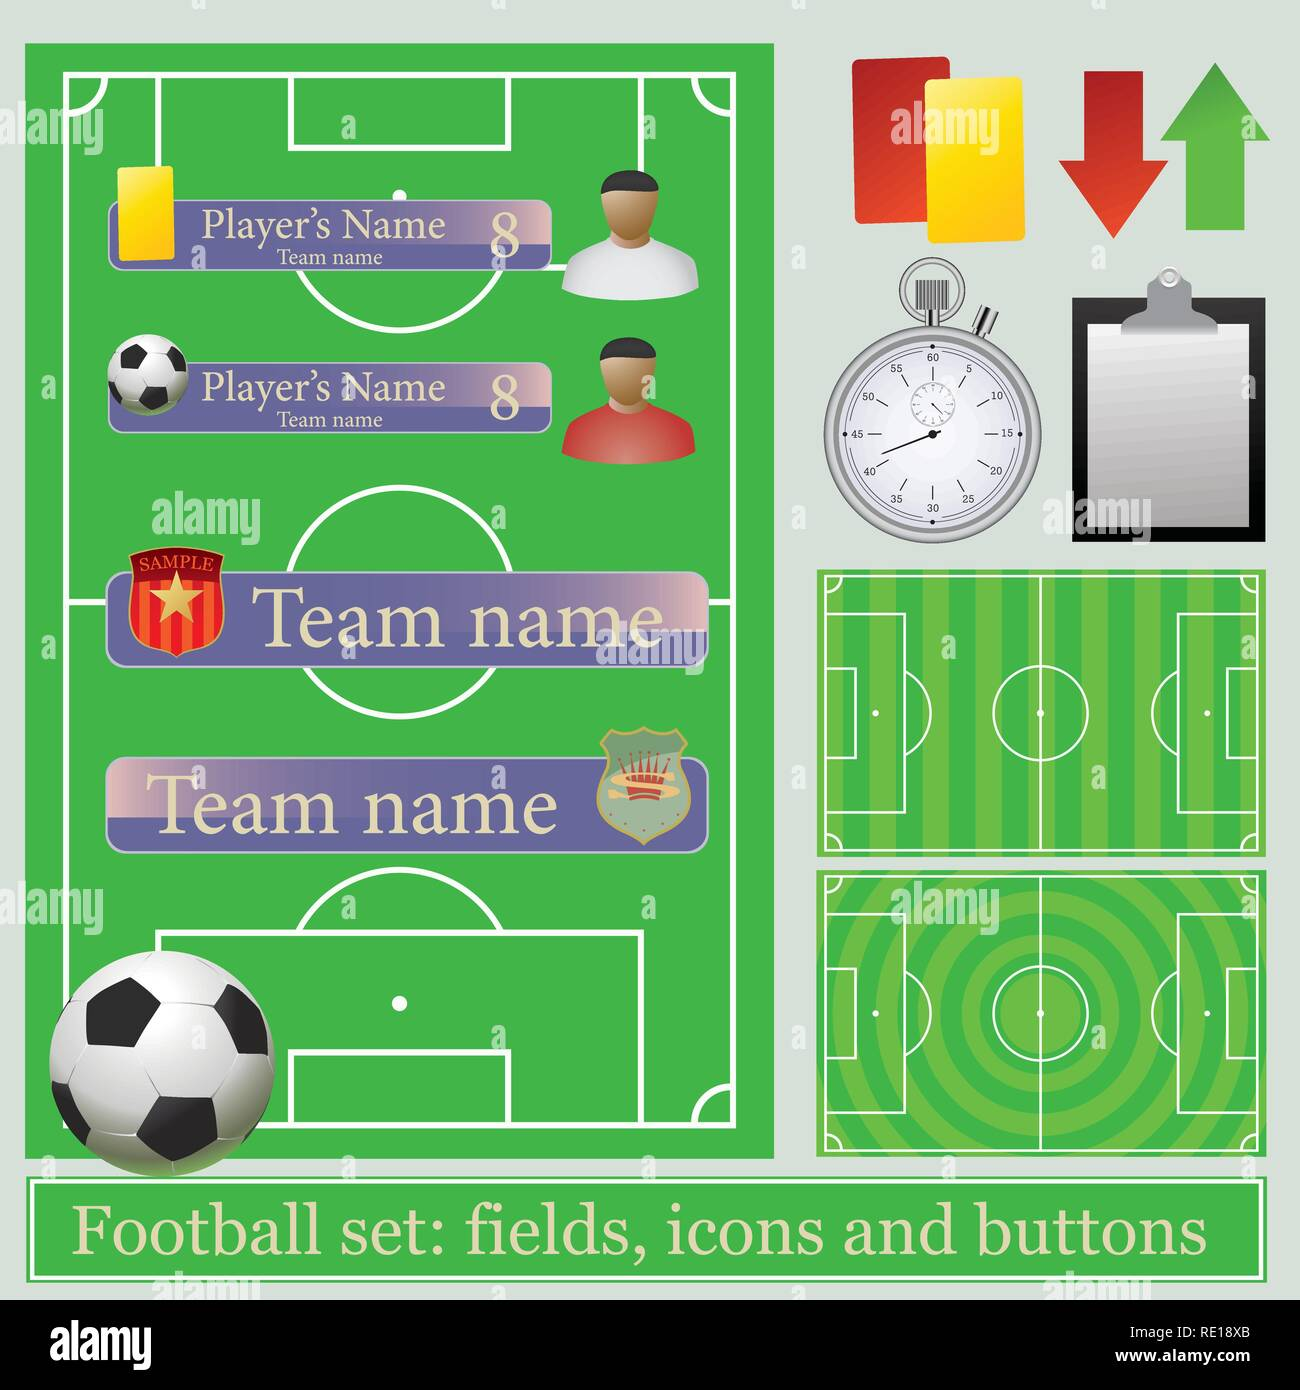 Football set: fields, icons and buttons - Stock Vector